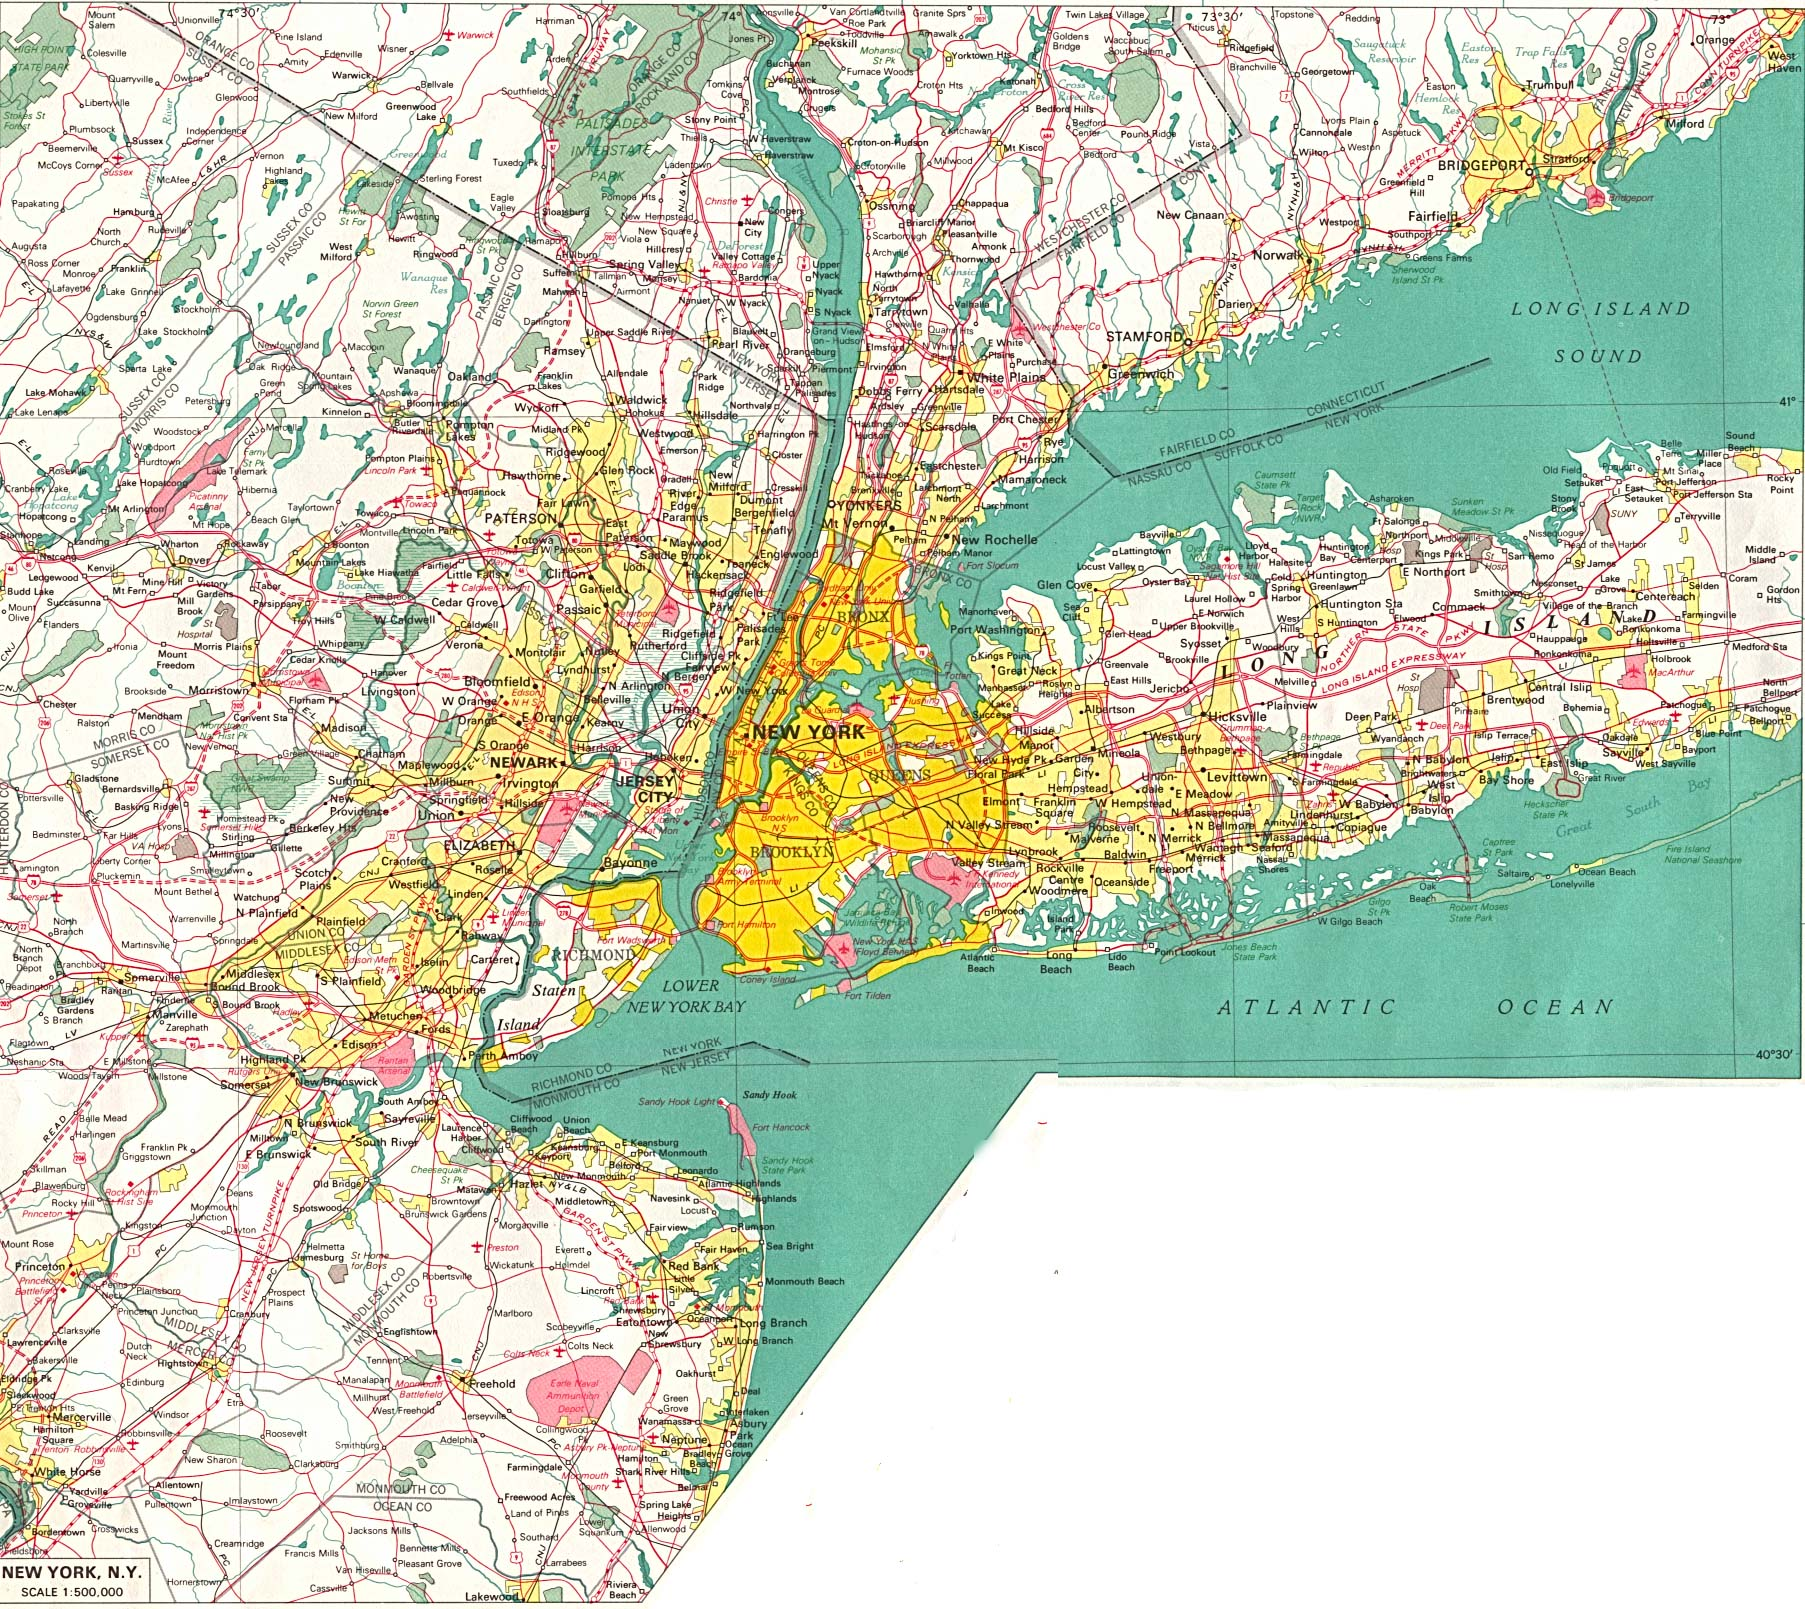 www.Mappi.net : Maps of cities : New York City on